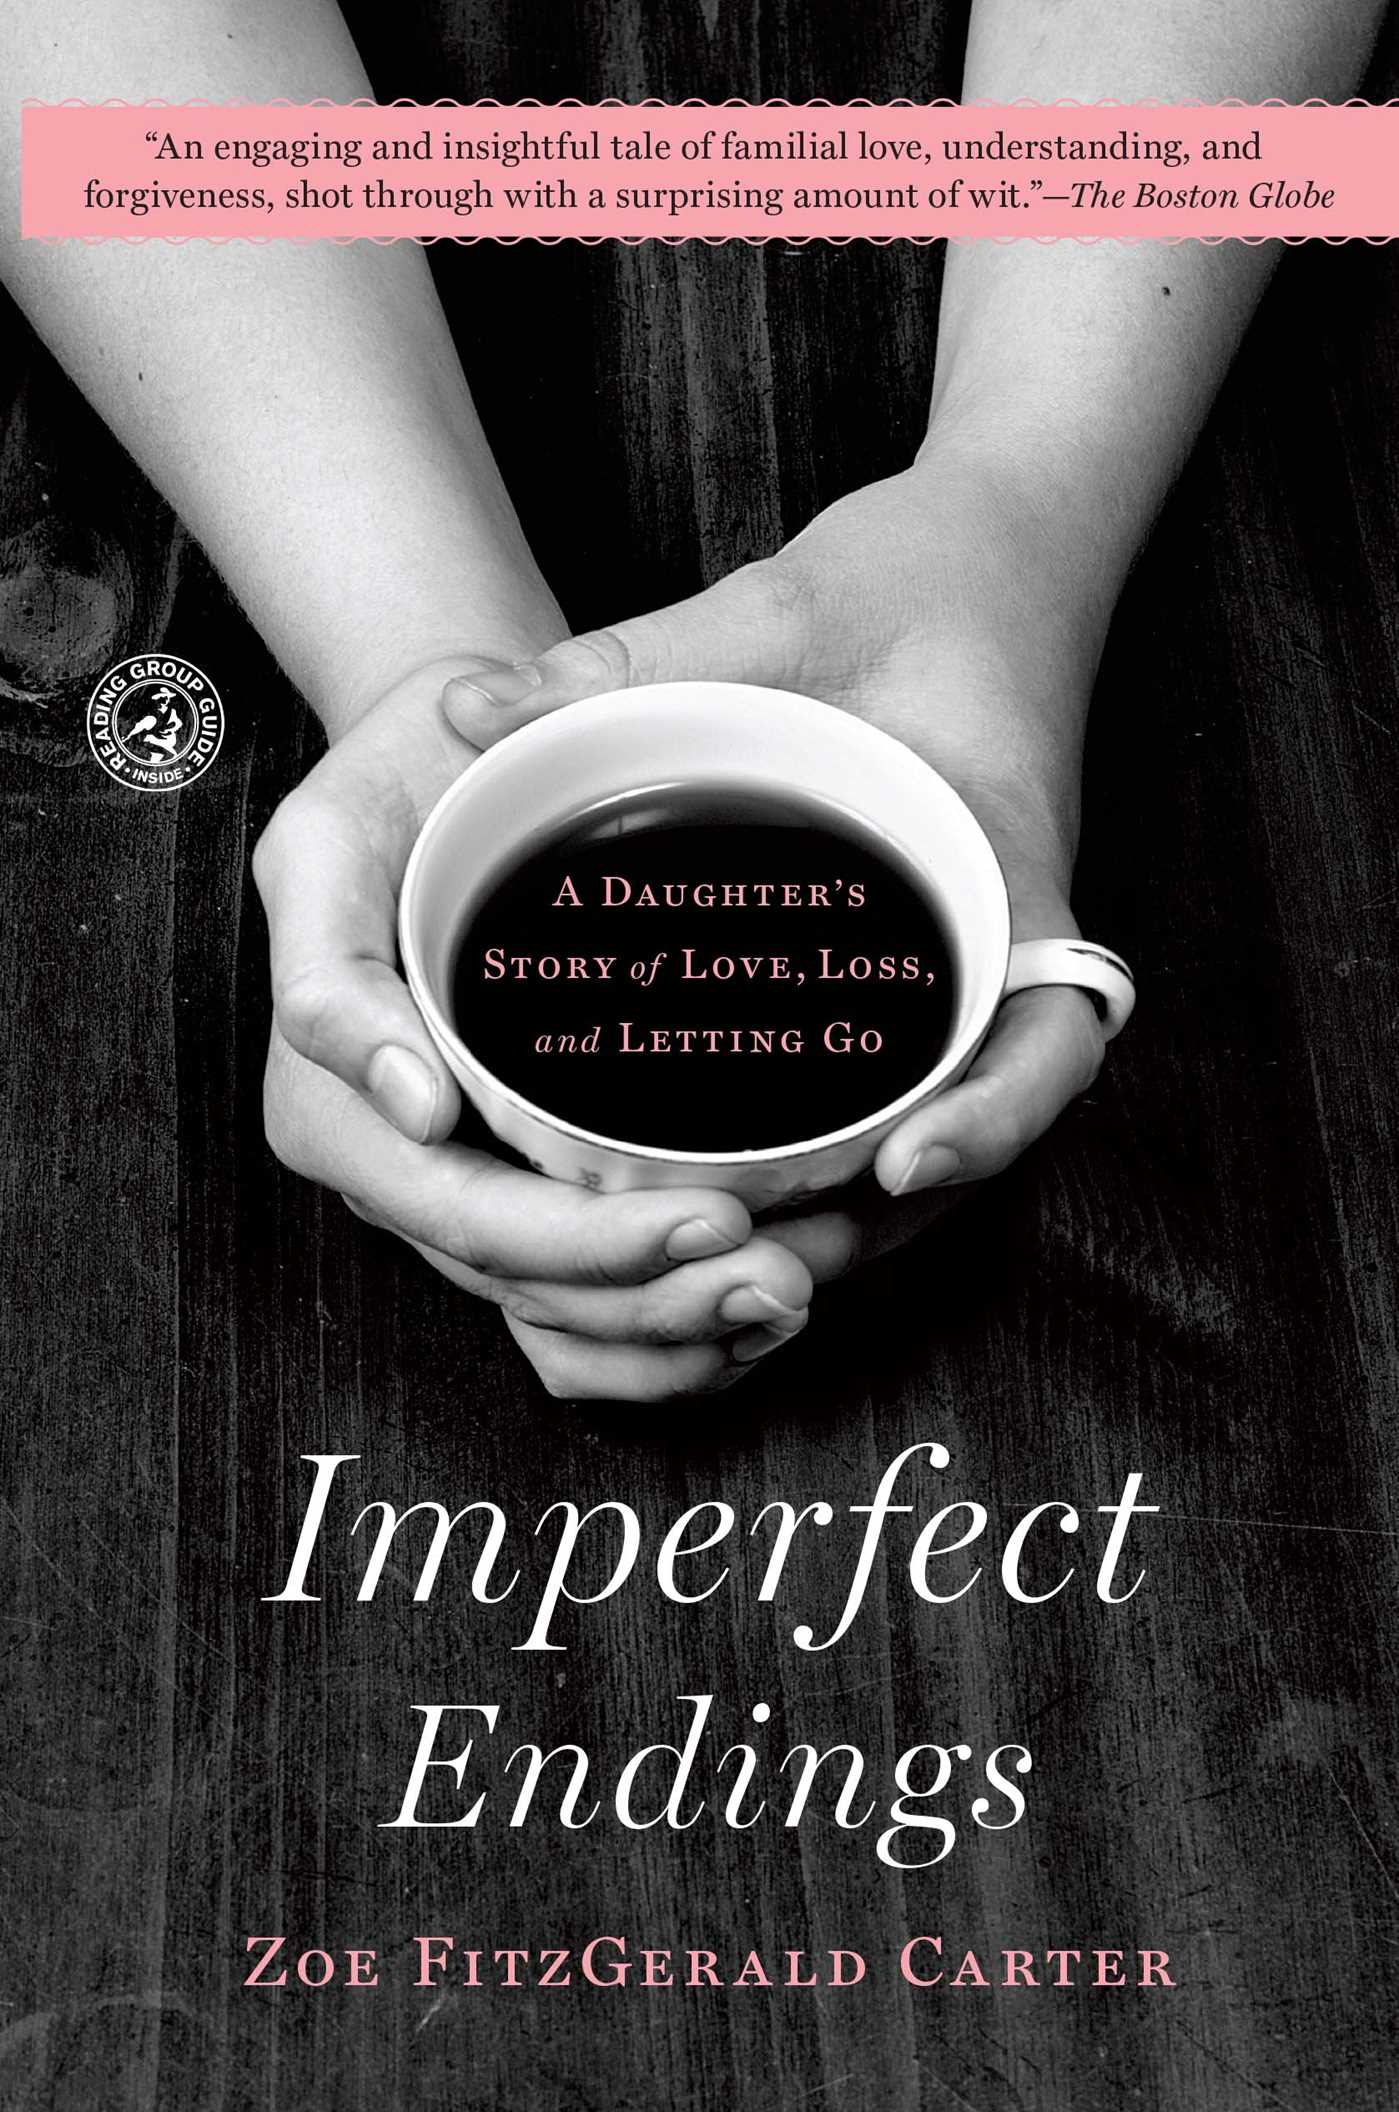 Imperfect endings 9781439154212 hr